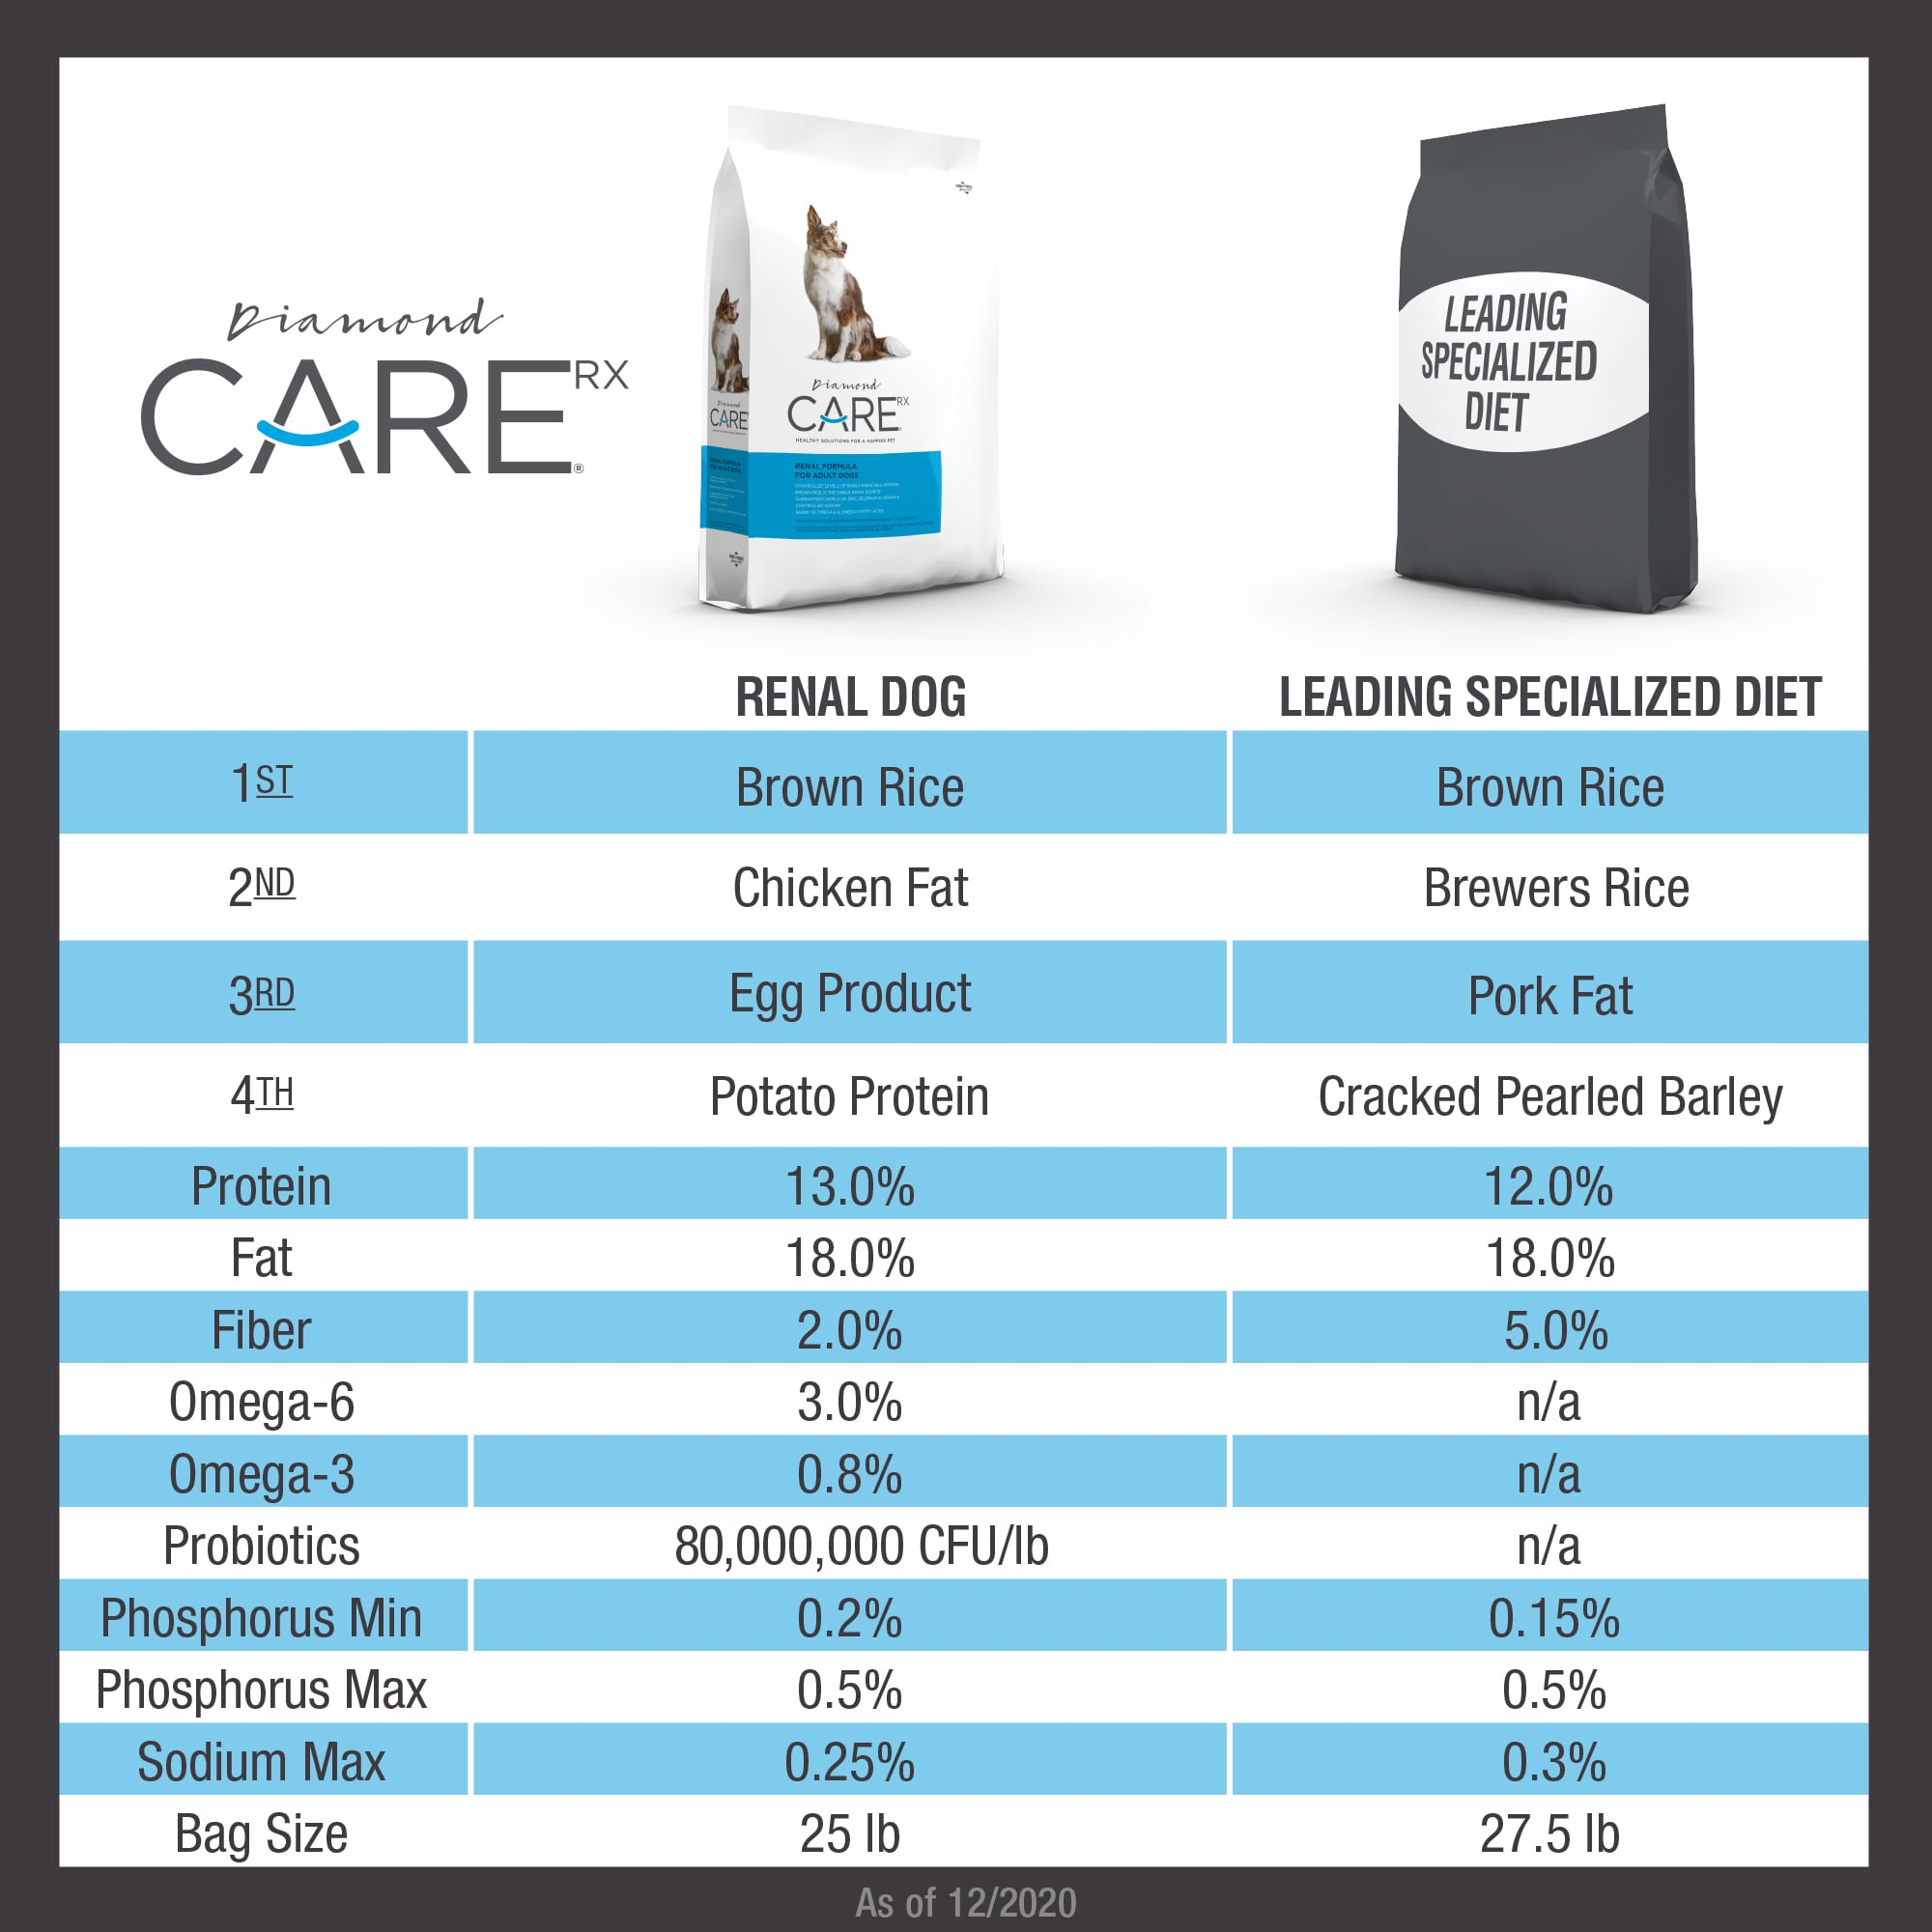 Diamond CARE Renal Formula for Adult Dogs comparison chart | Diamond Pet Foods